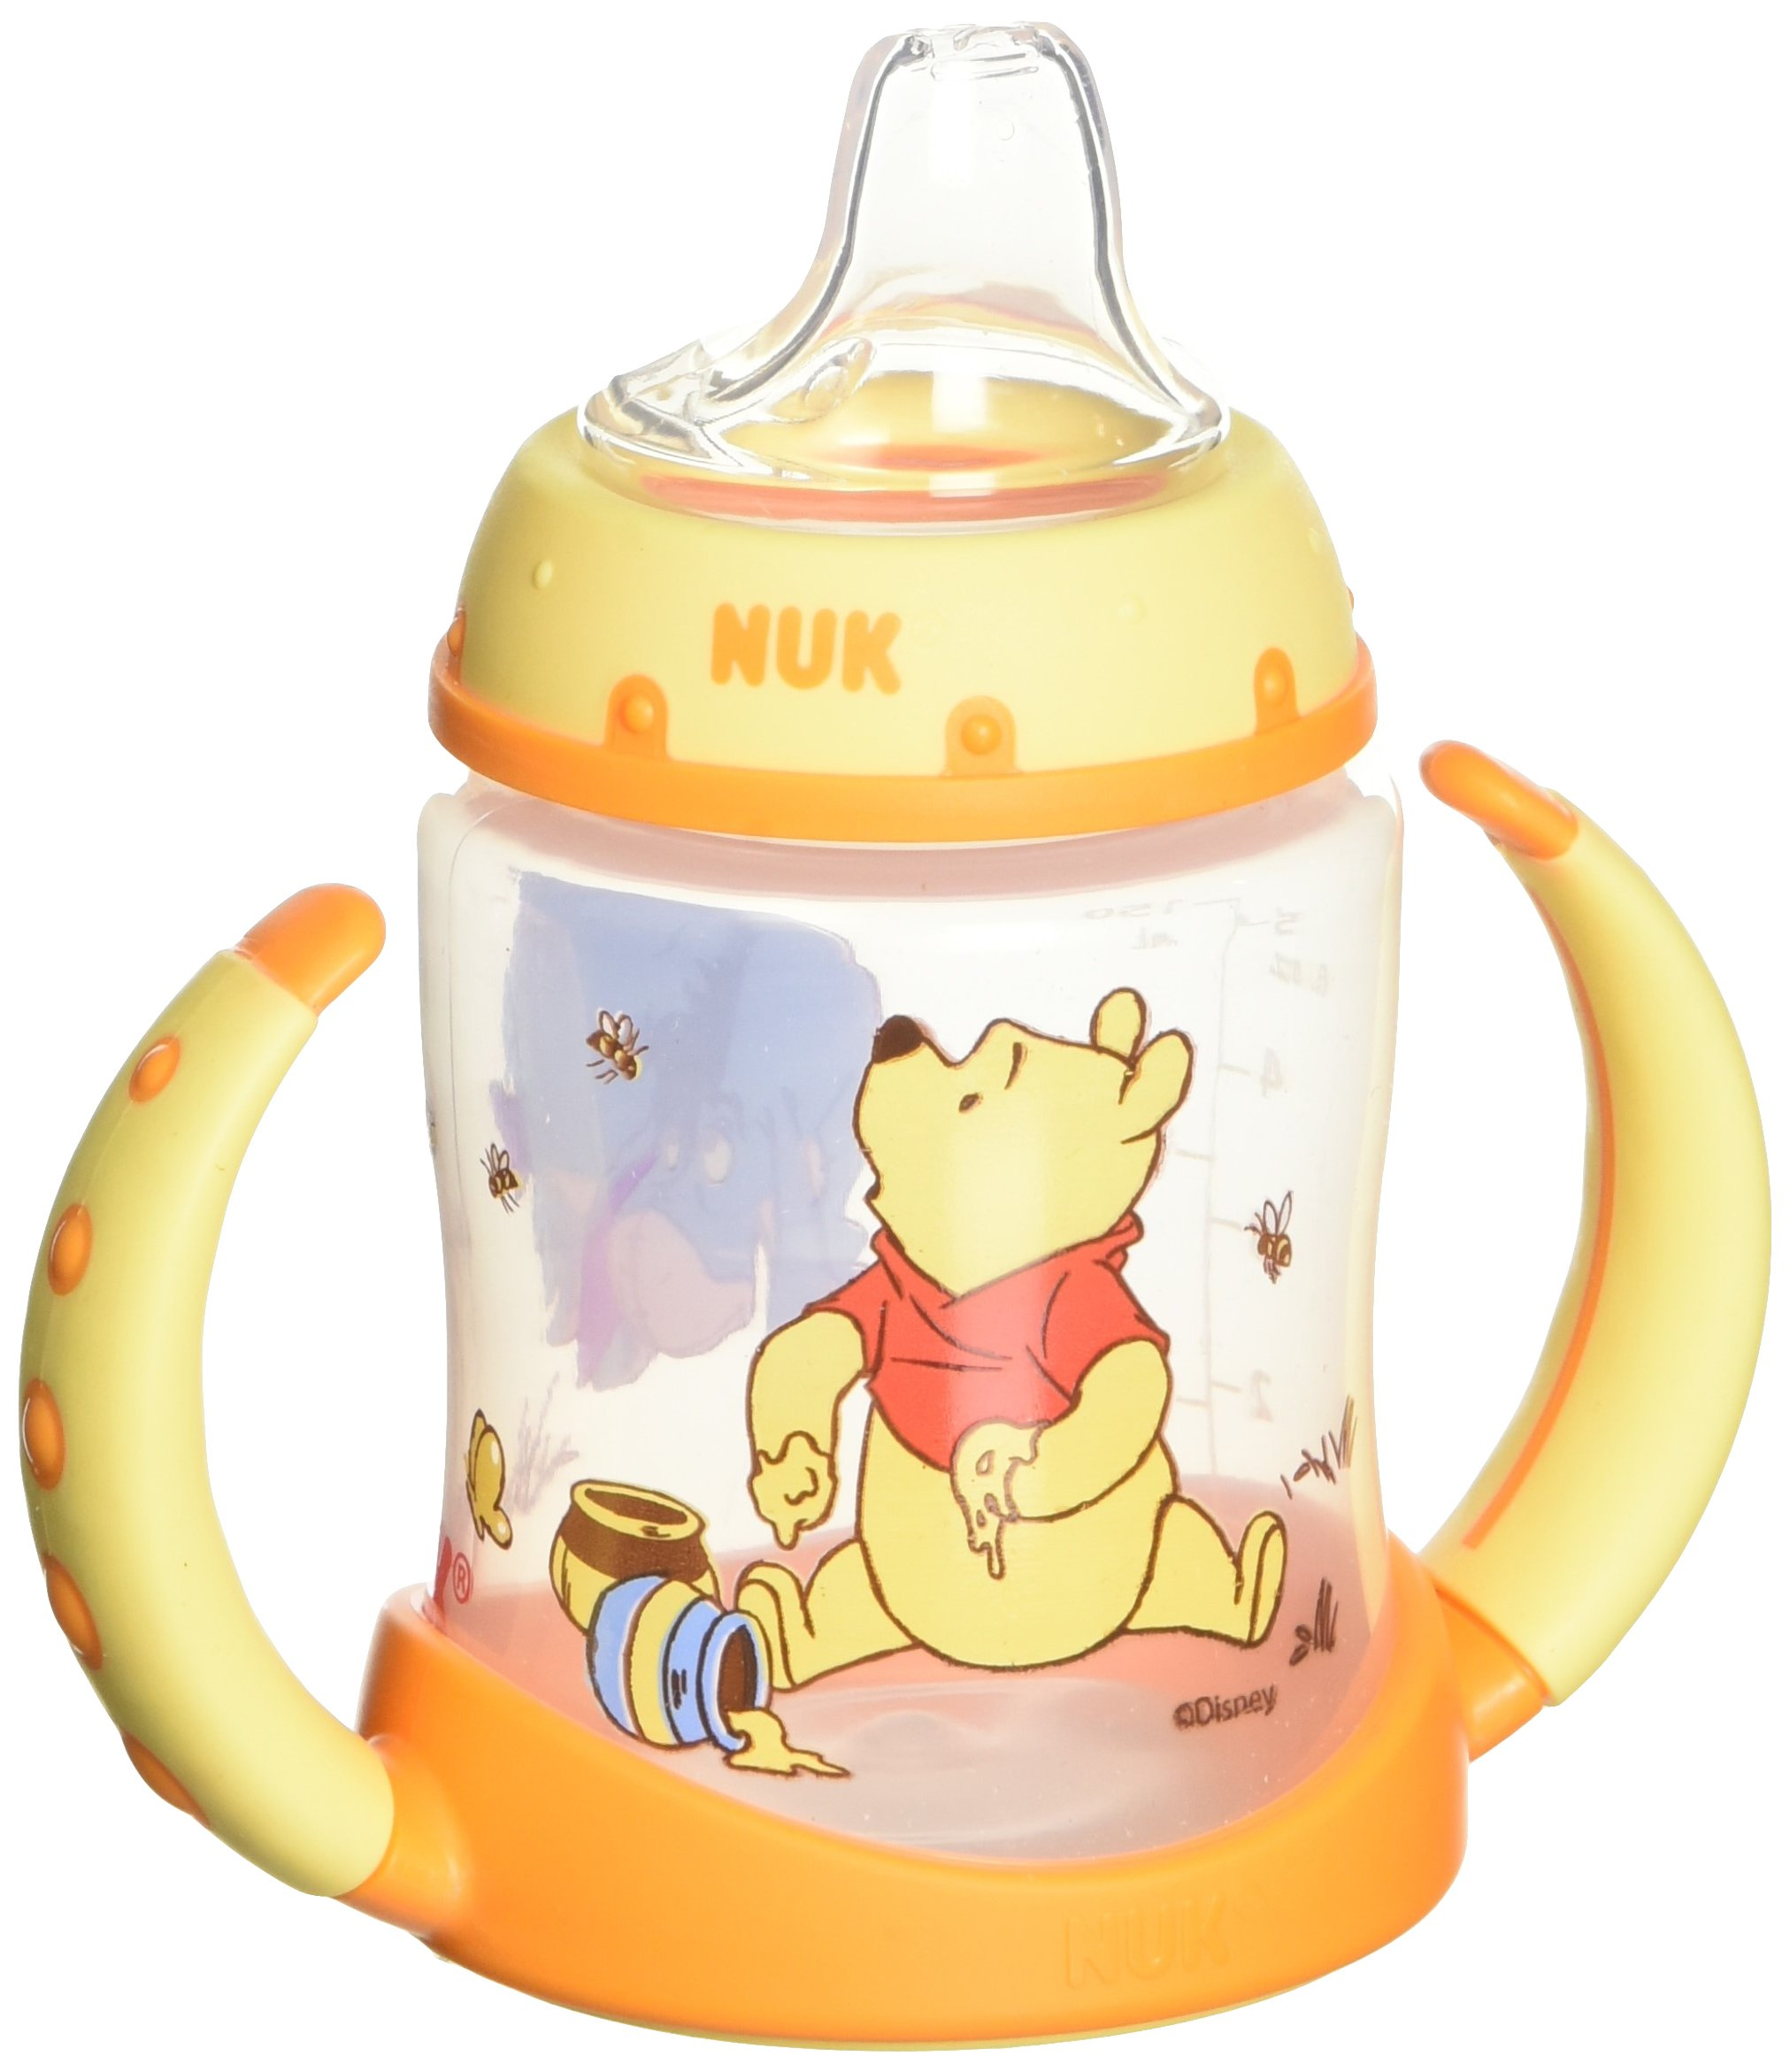 NUK Disney Learner Sippy Cup, Winnie The Pooh, 5oz 1pk by Disney